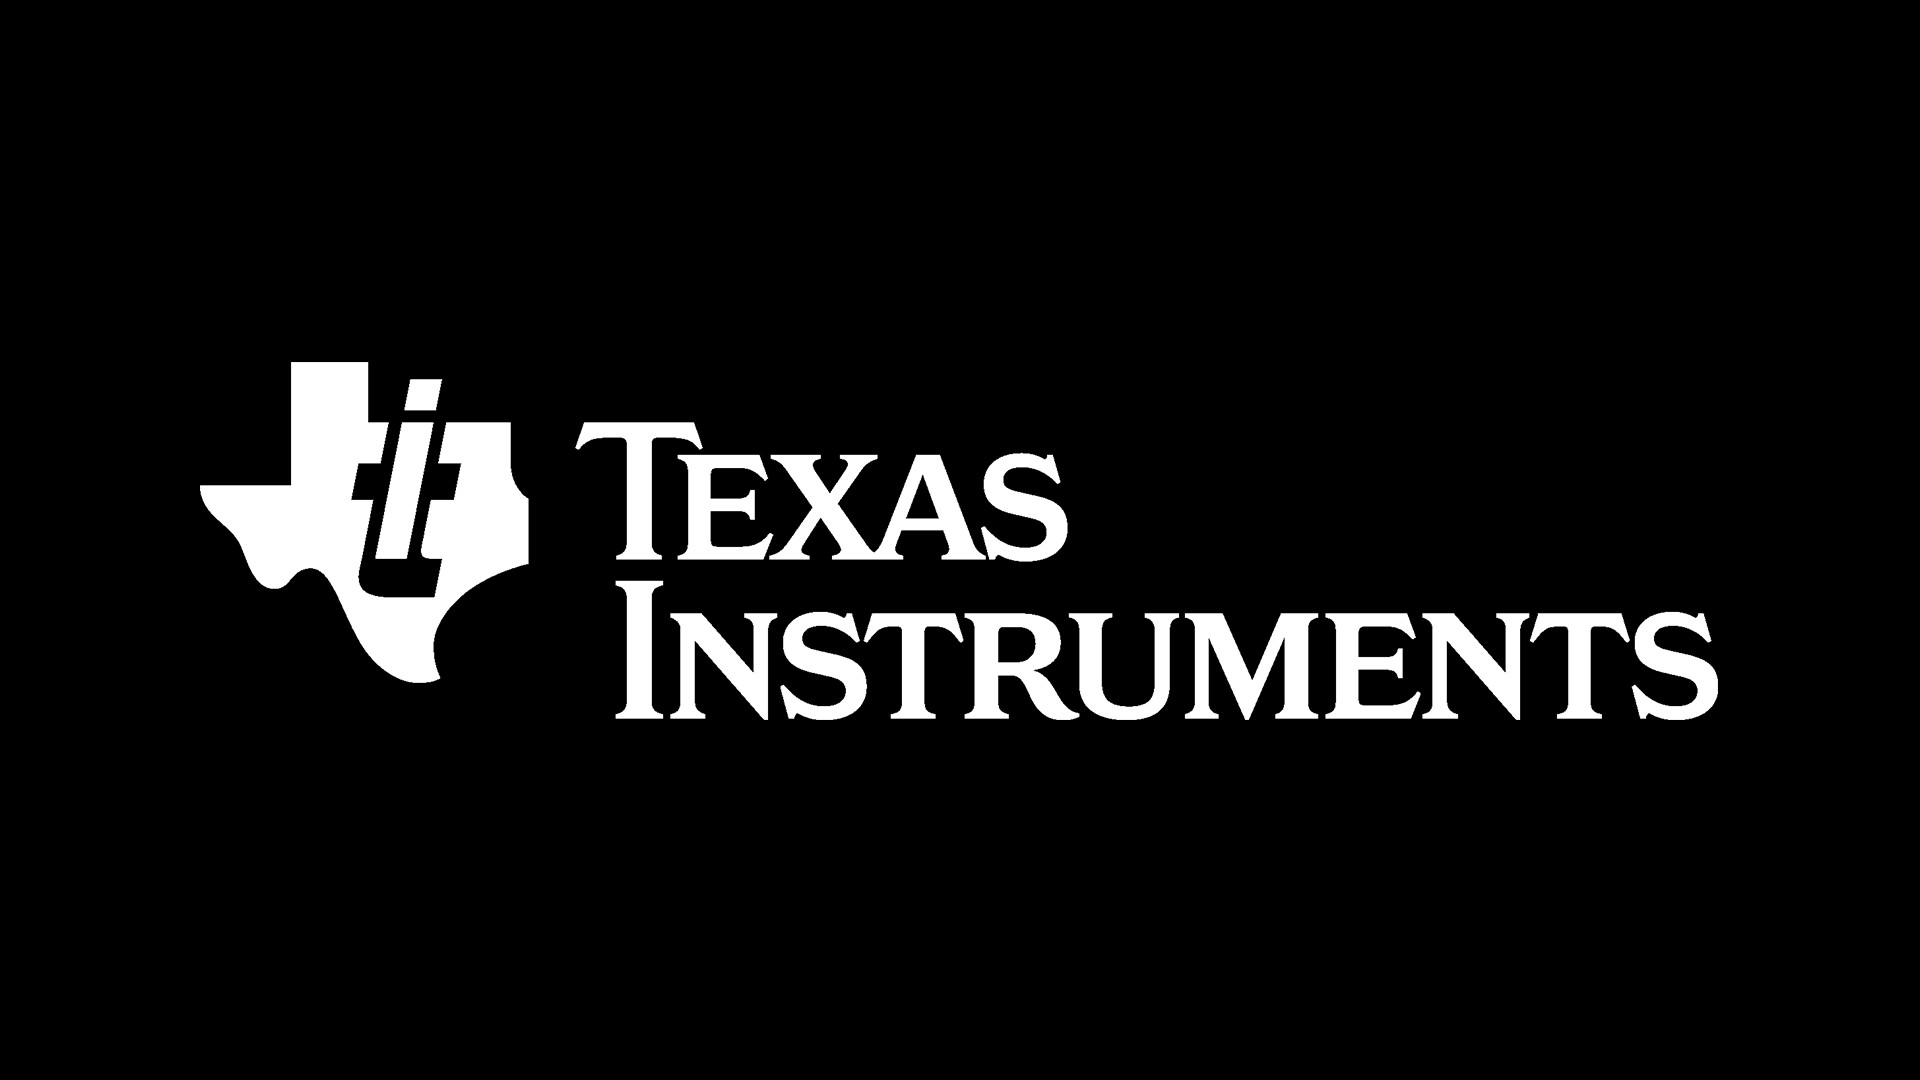 1920x1080 Wallpapers In High Quality: Texas Instruments by Siobhan Plattner, January  14, 2013